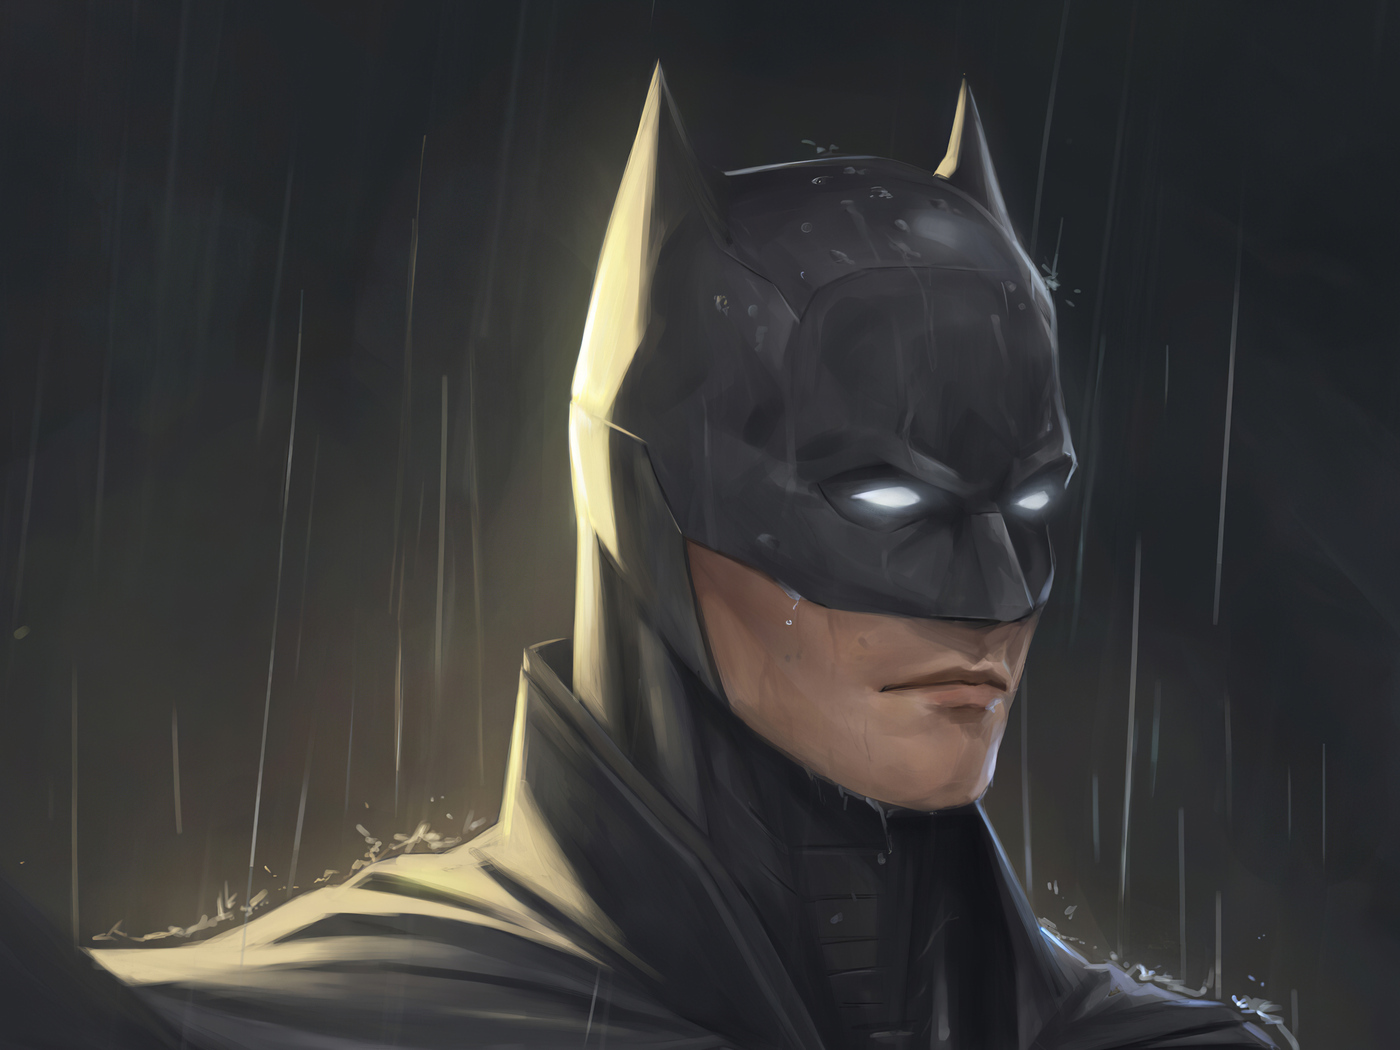 batman-raining-3b.jpg